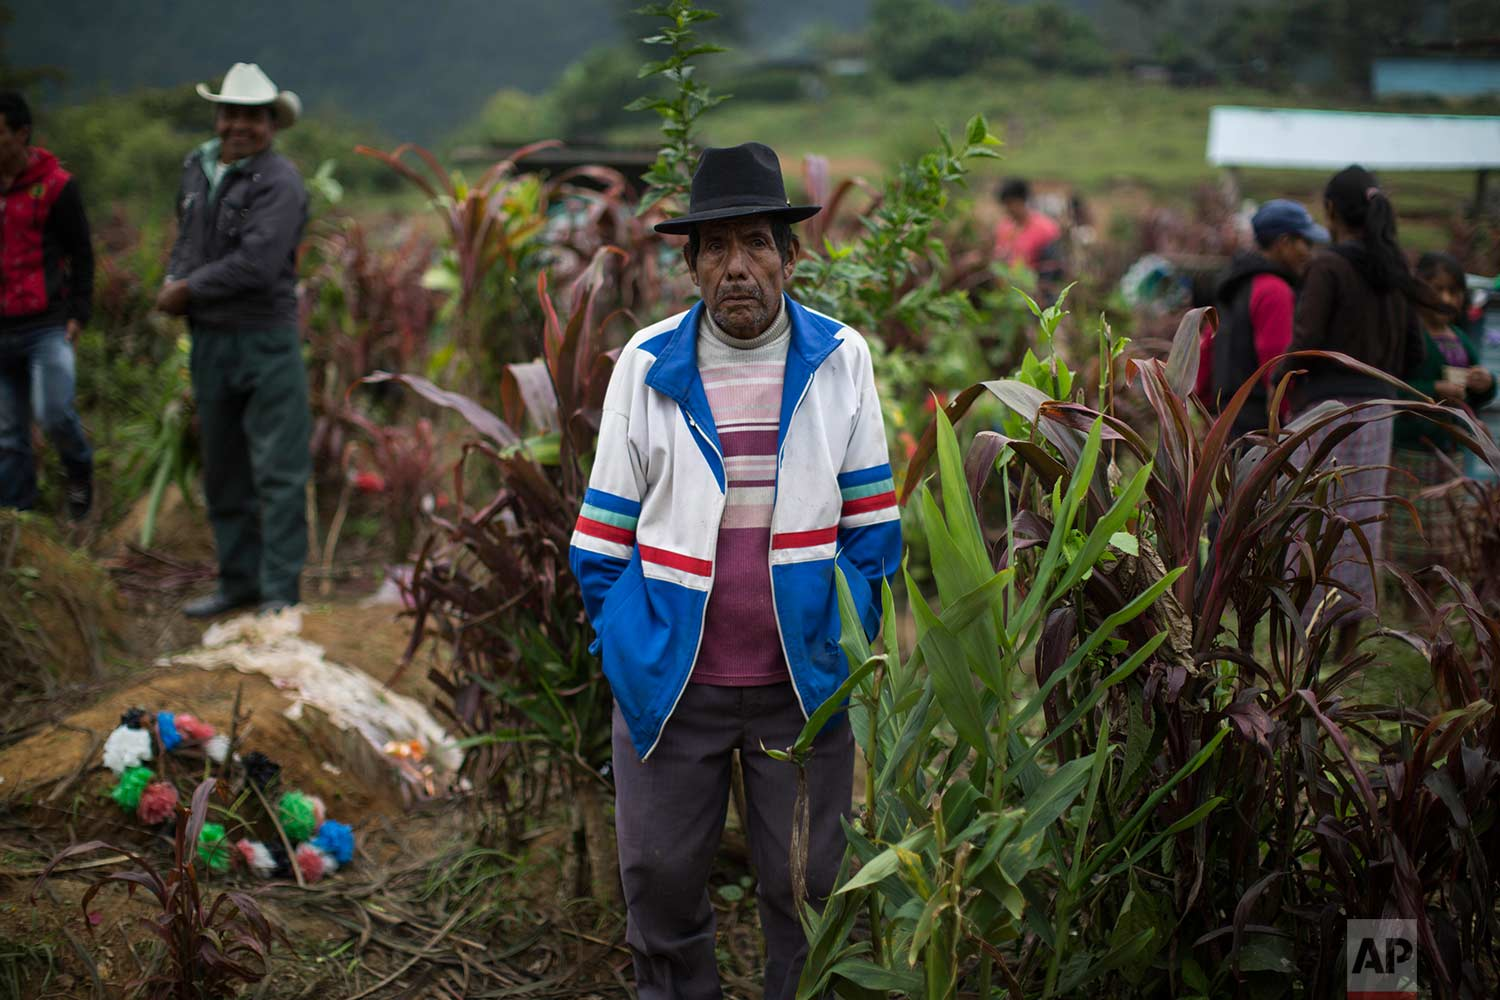 In this Nov. 30, 2017 photo, Tomas Cavinal Toma, 70, watches the burial of civil war victims at the cemetery in Santa Avelina, Guatemala. (AP Photo/Luis Soto)